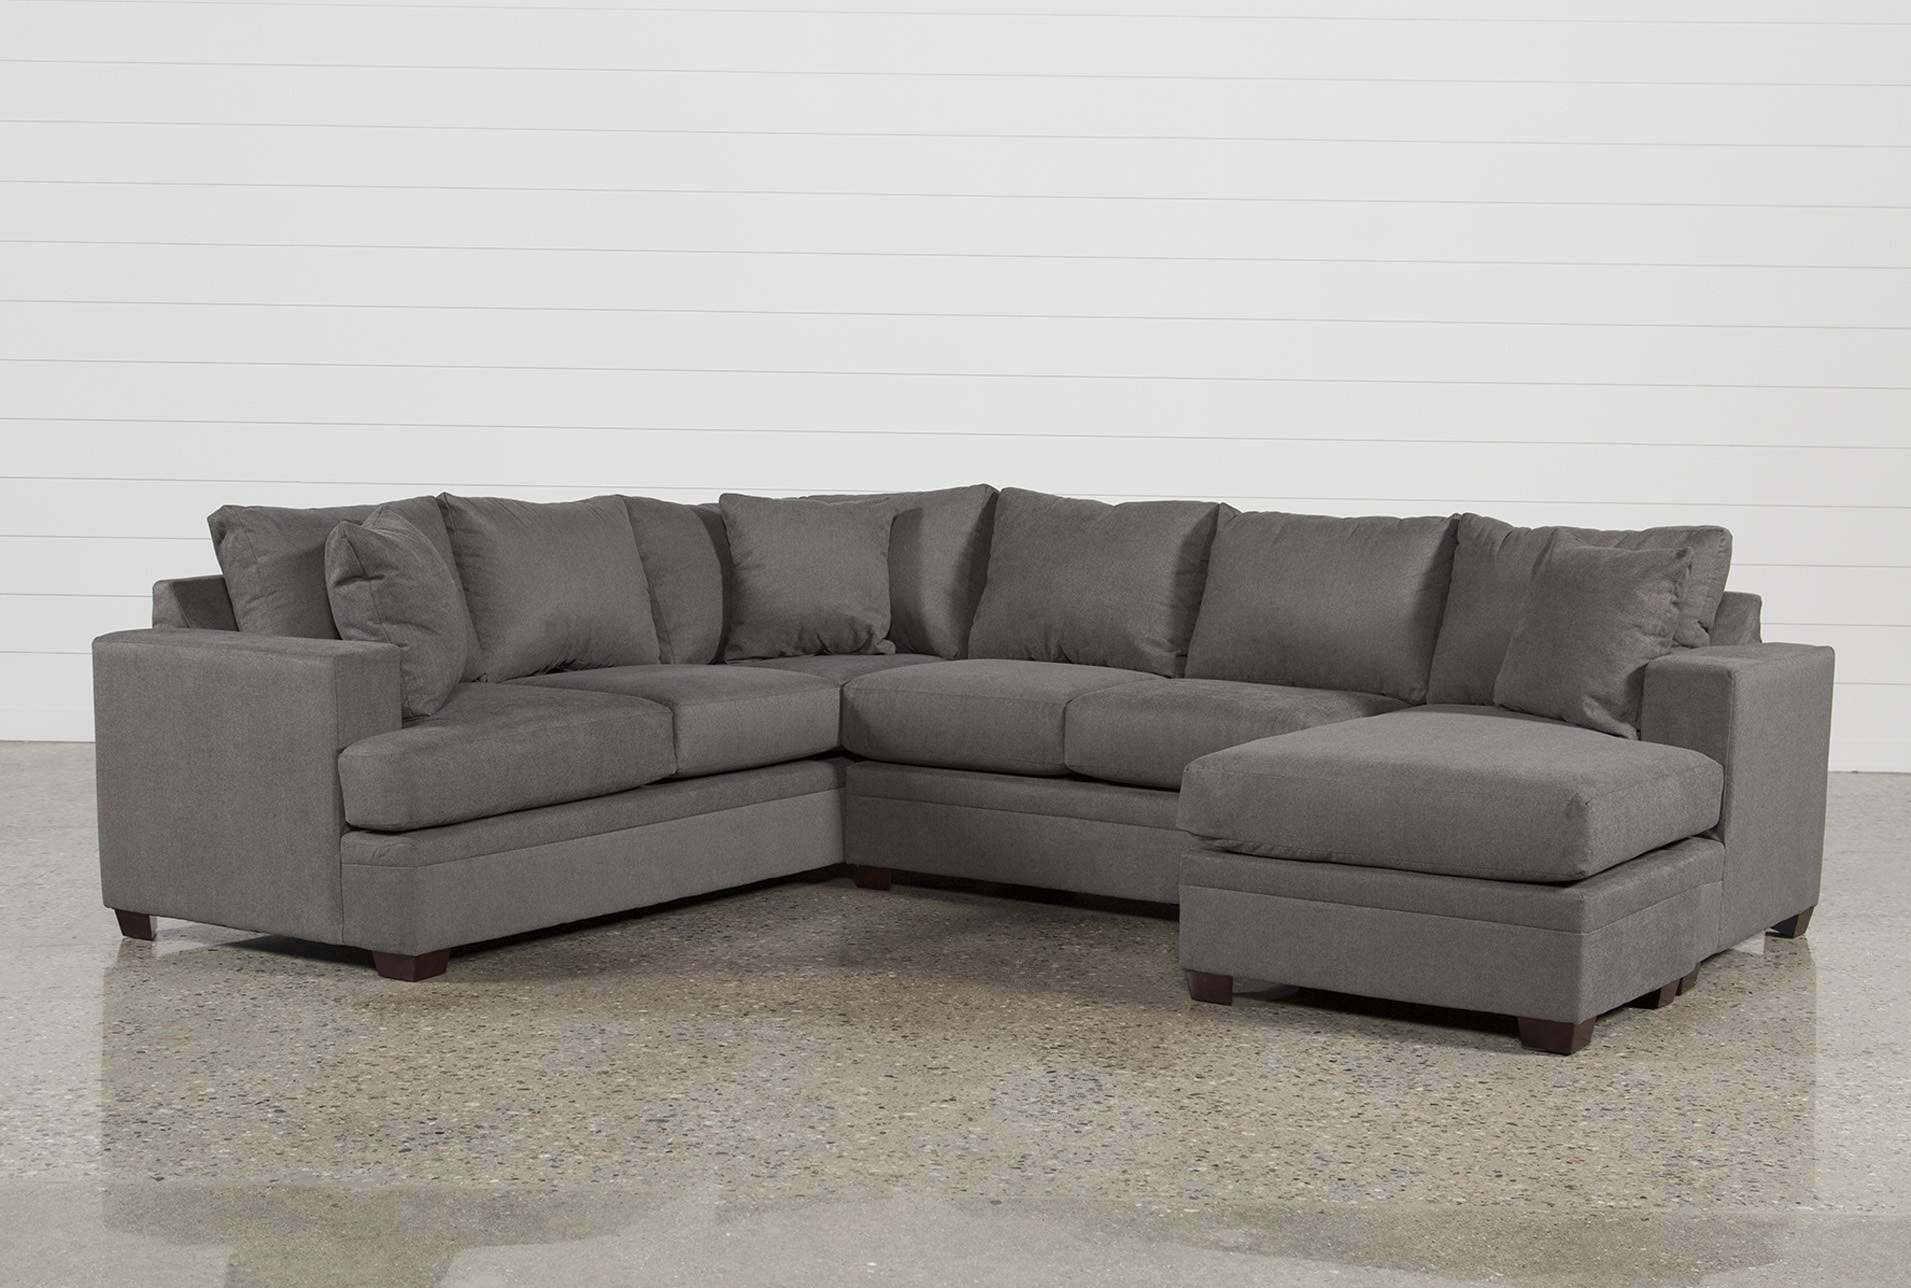 Techniques one can use to sell   more sectional couch